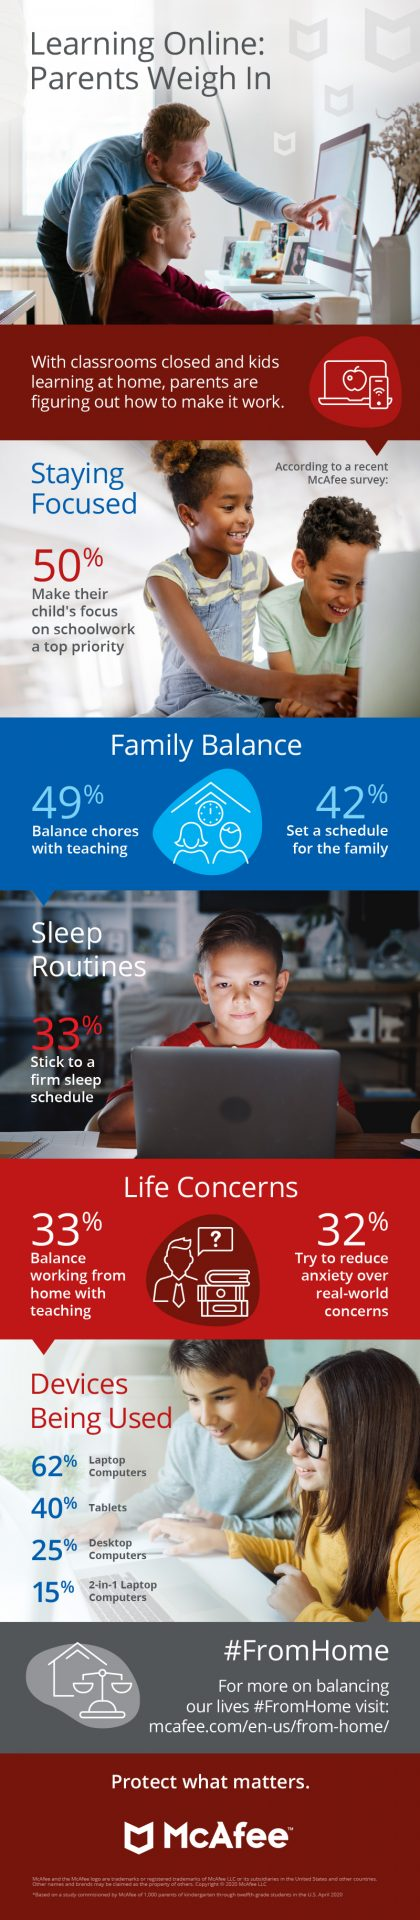 School # FromHome: The Challenges of Online Learning for Parents and Children